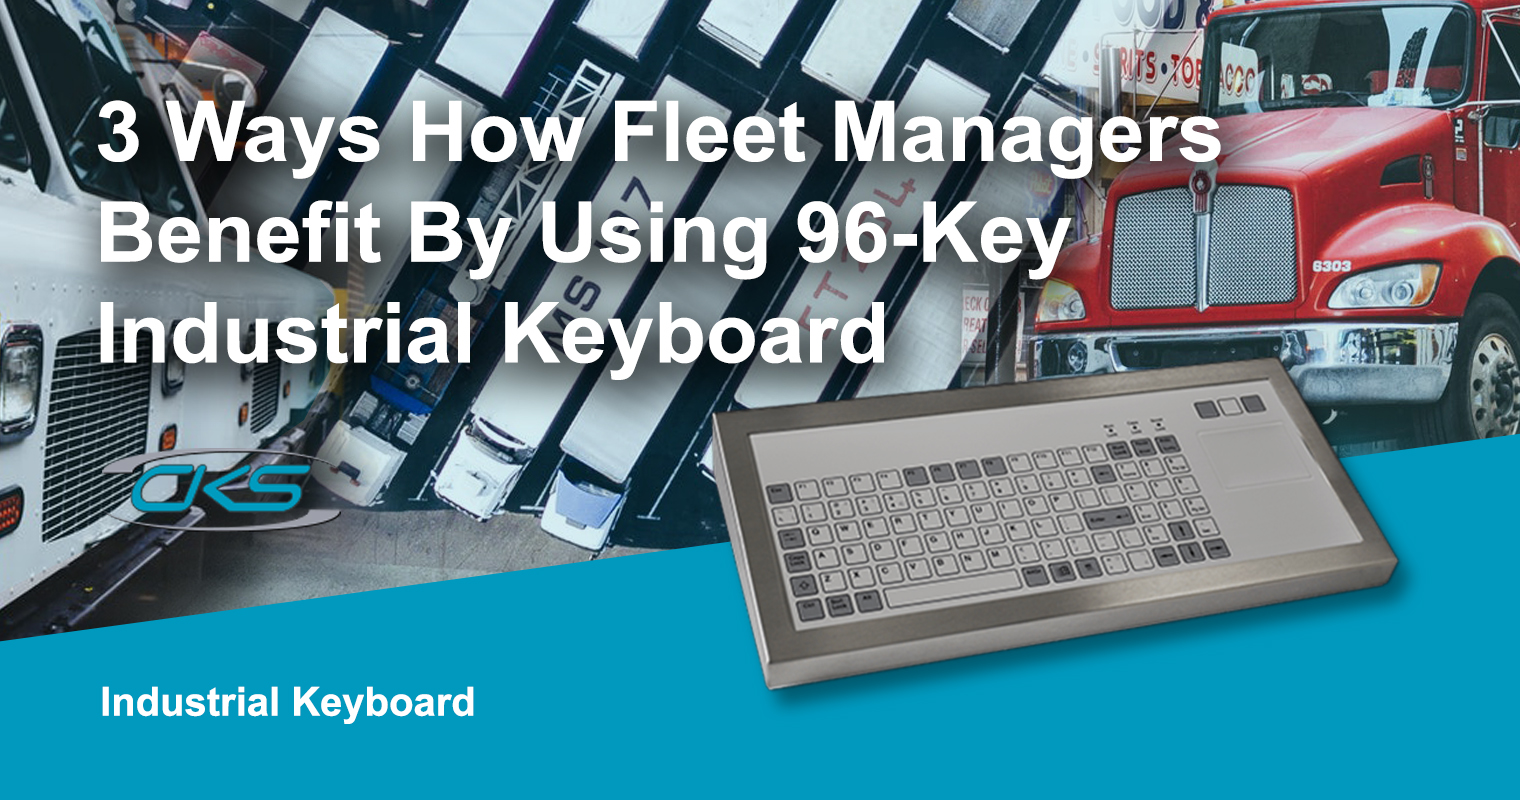 Maximising Operational Efficiency Using the 96-key Rugged Keyboards